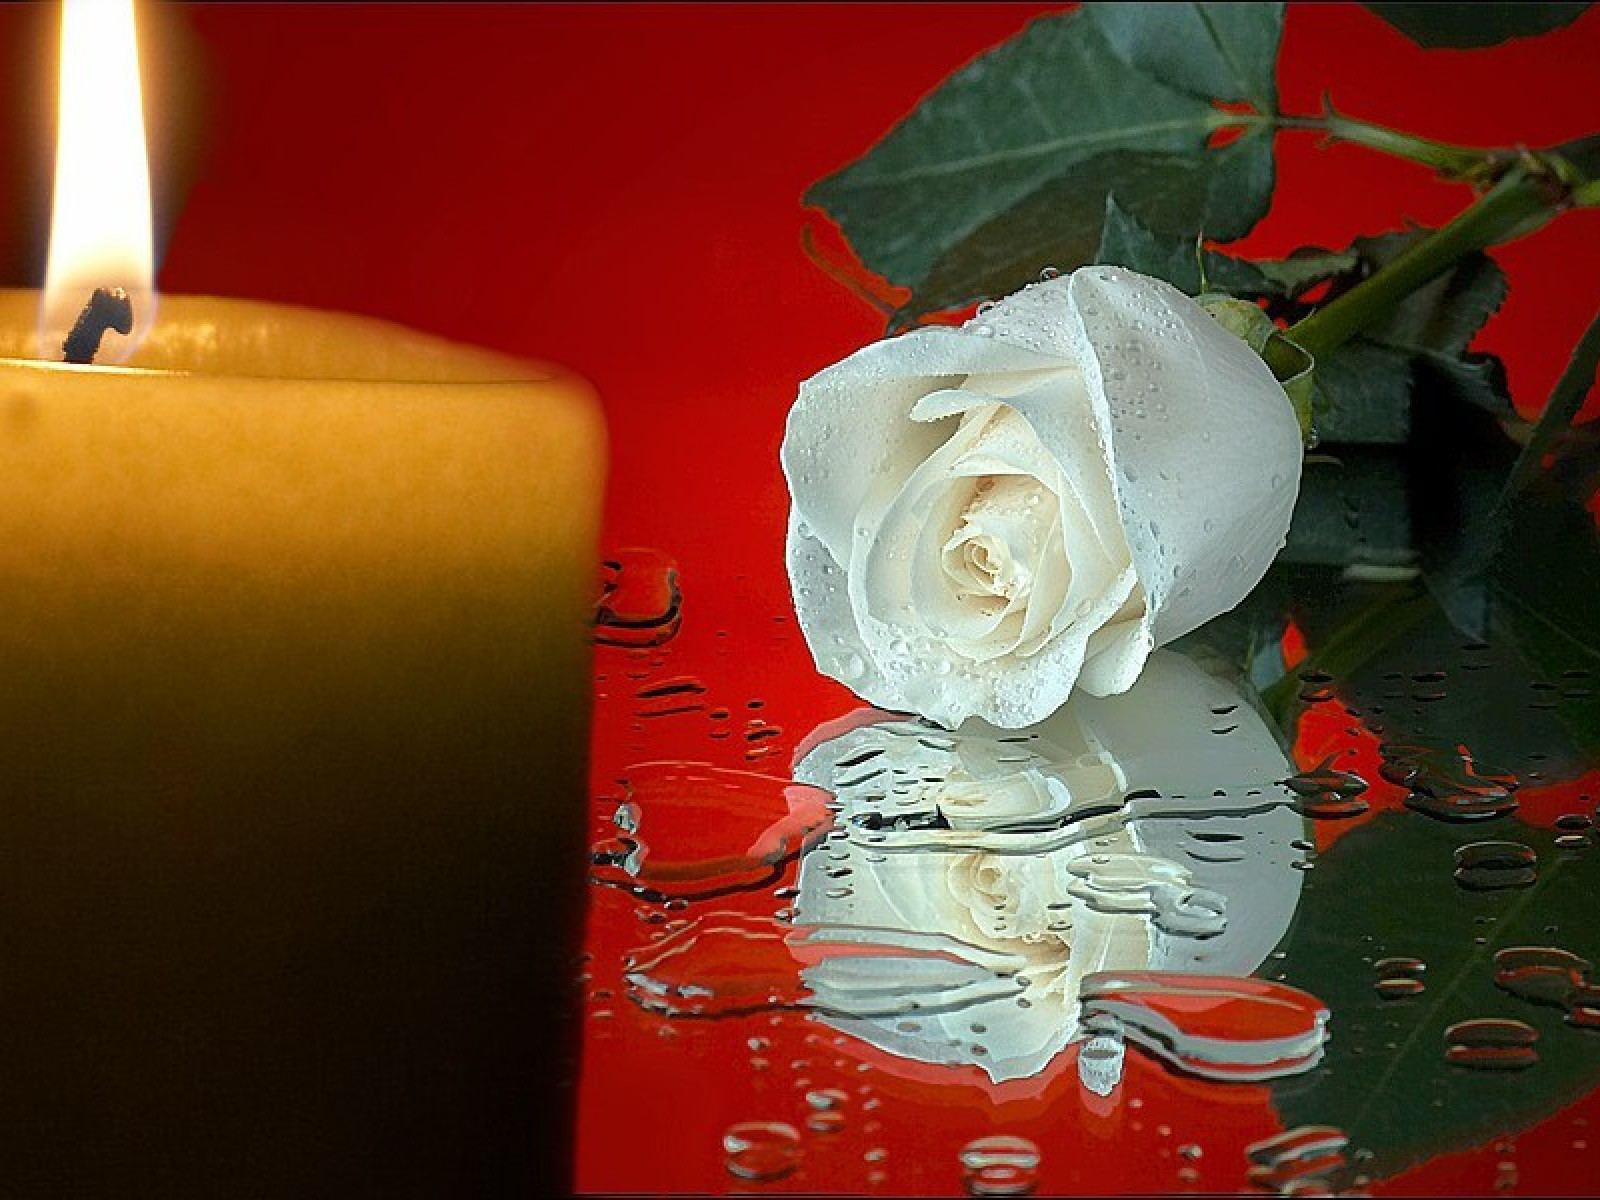 Water flowers candles roses white flowers wallpaper ...